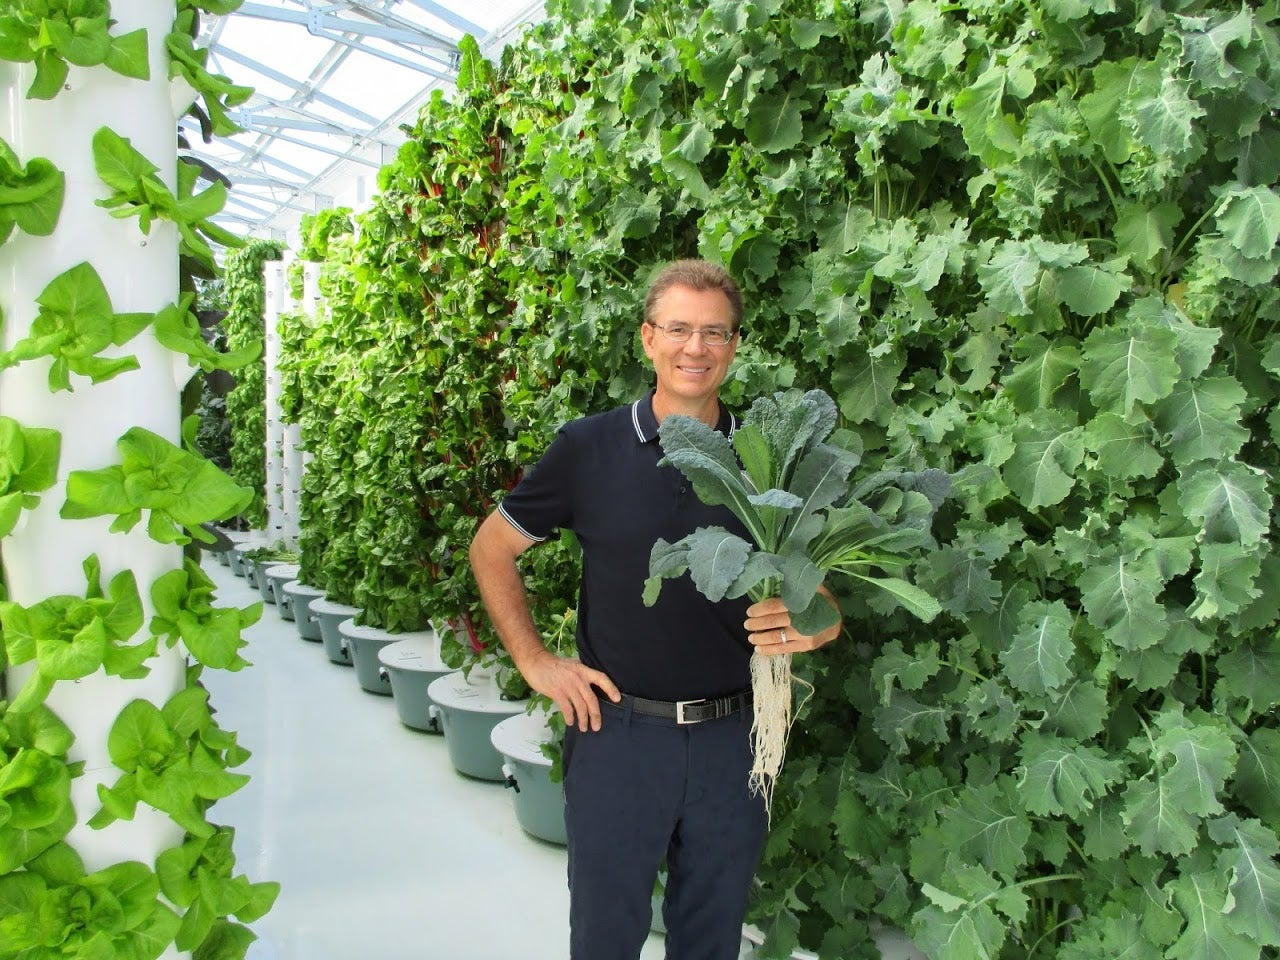 Troy Albright in True Garden greenhouse amidst vertical aeroponic technology